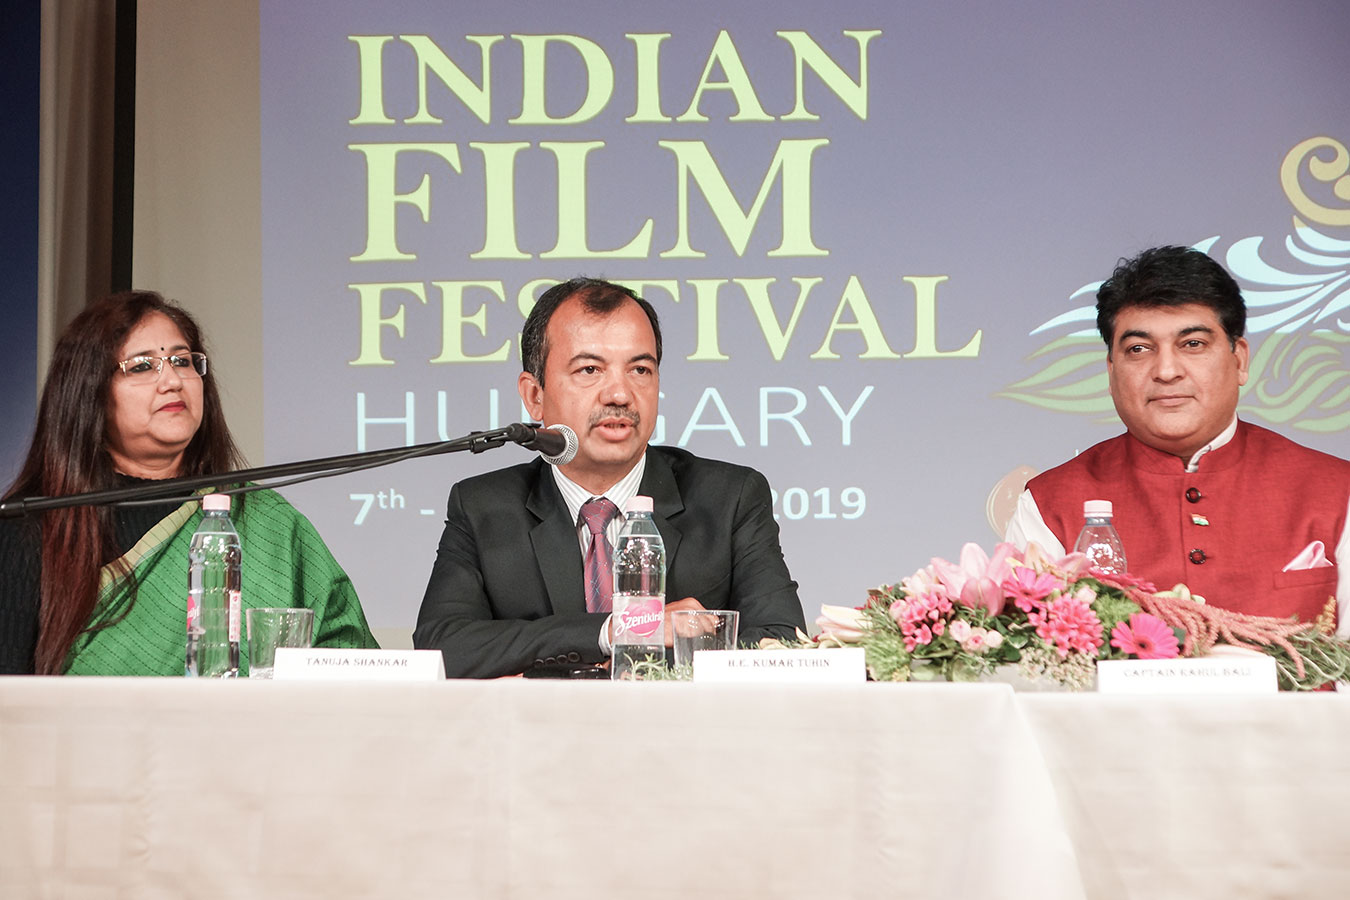 indian-film-festival-hungary-2019-pc-kumar-tuhin-web.jpg